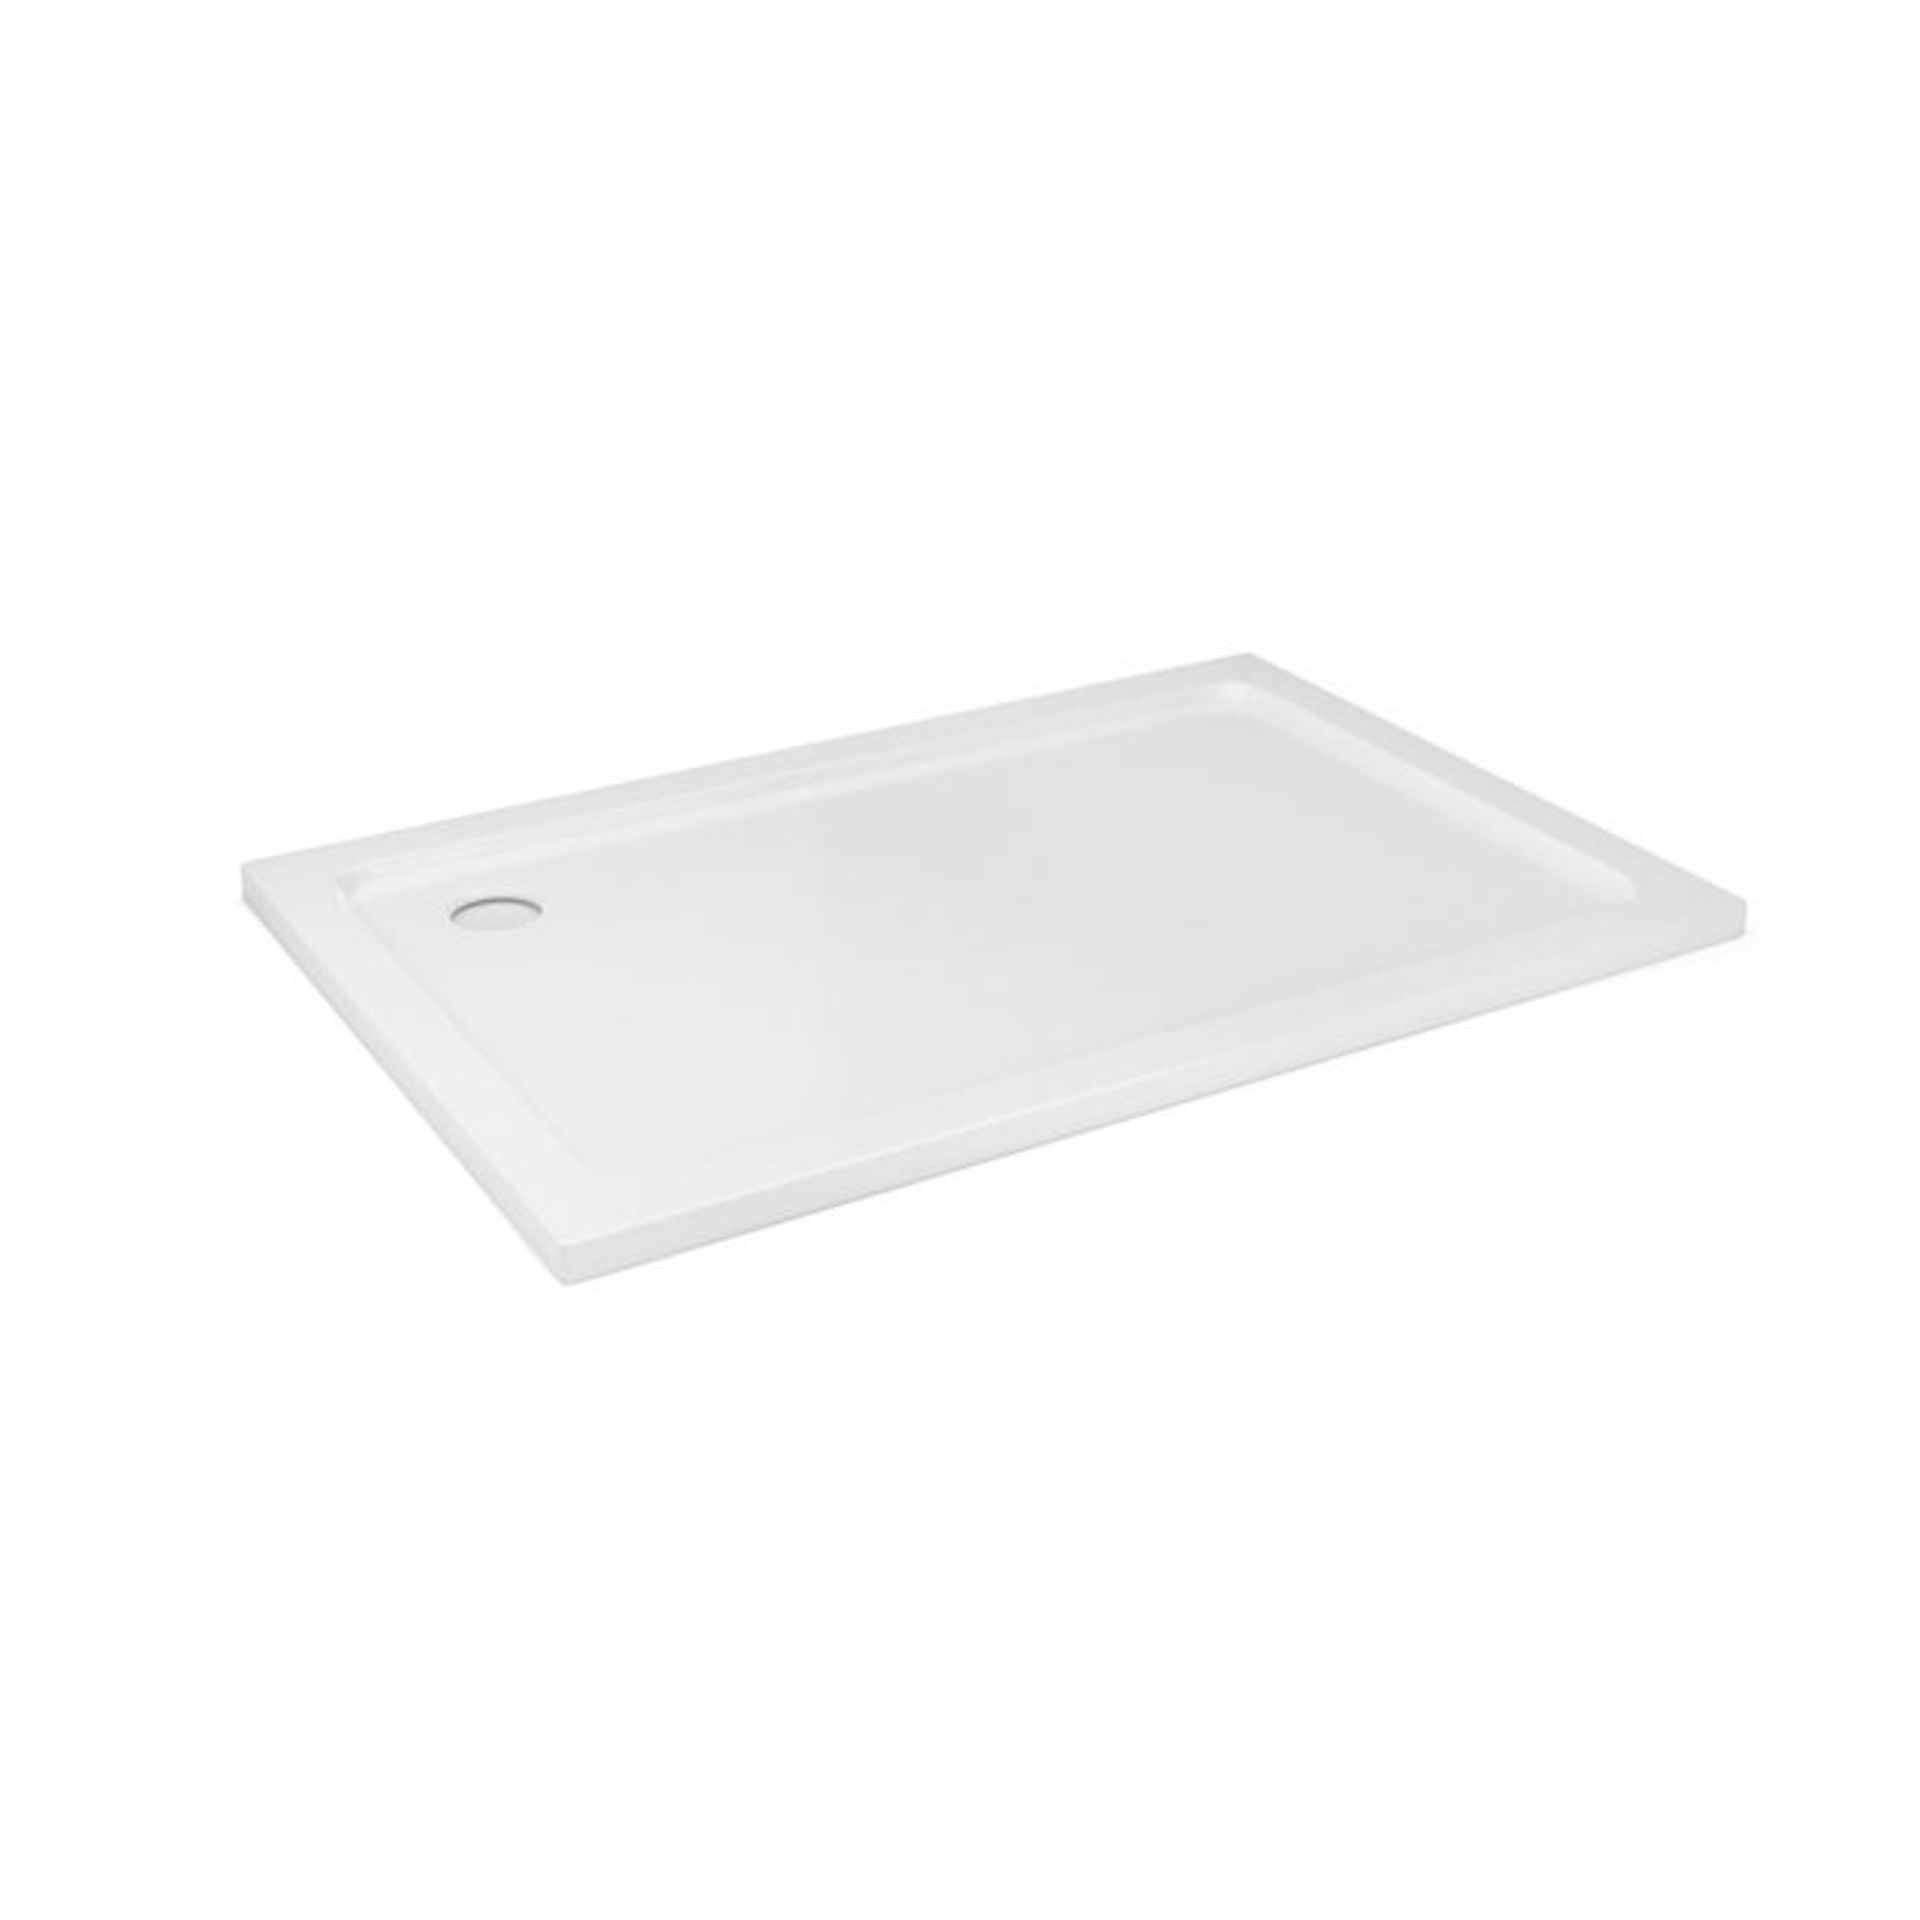 Lot 48 - (XX34) 1200x800mm Rectangular Ultra Slim Shower Tray. RRP £334.99. Constructed from acrylic ca...